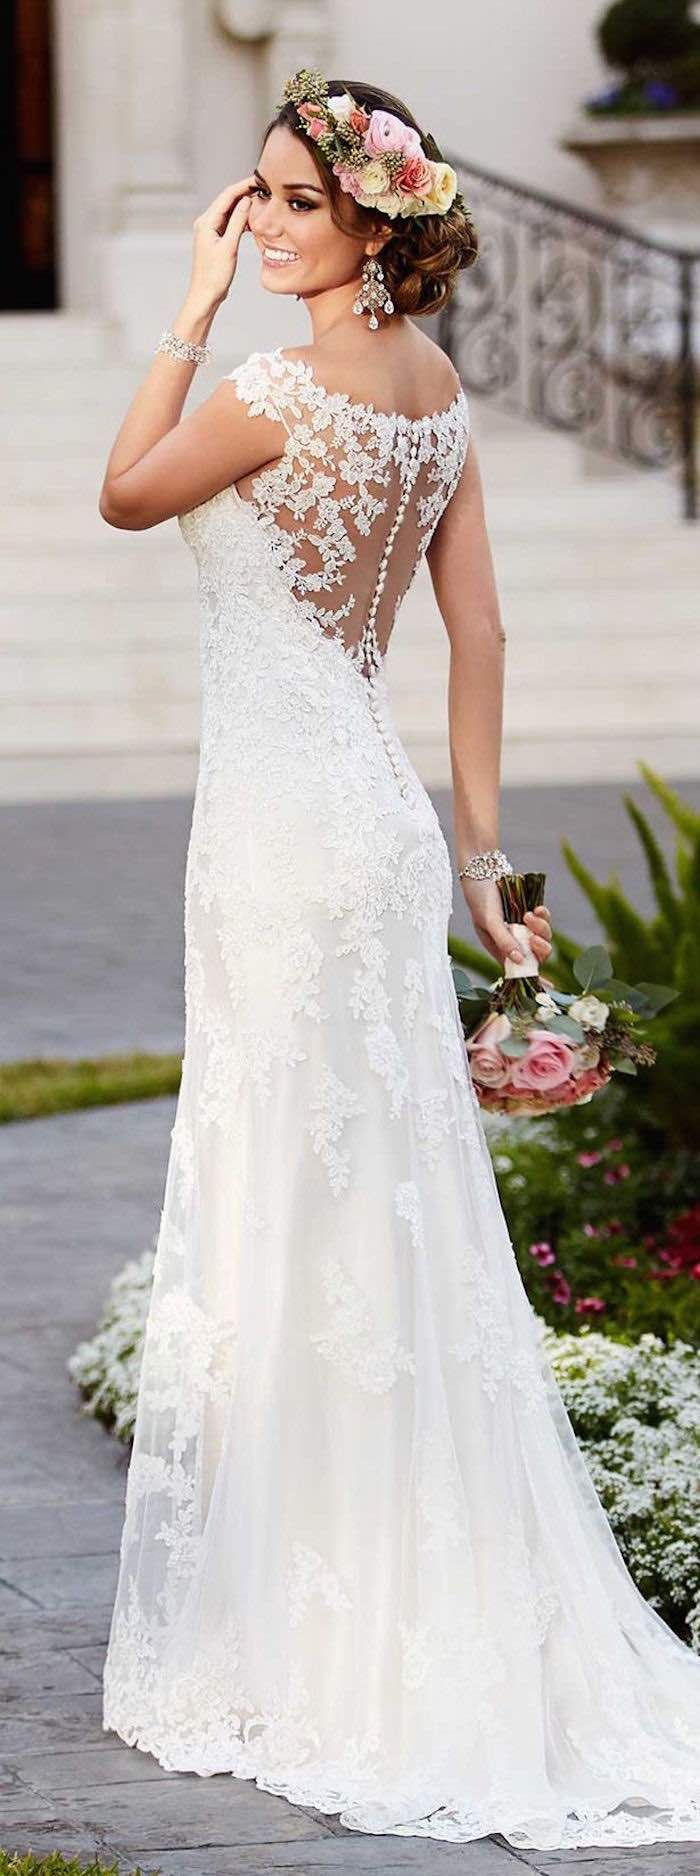 Look stylish and romantic with lace wedding gowns